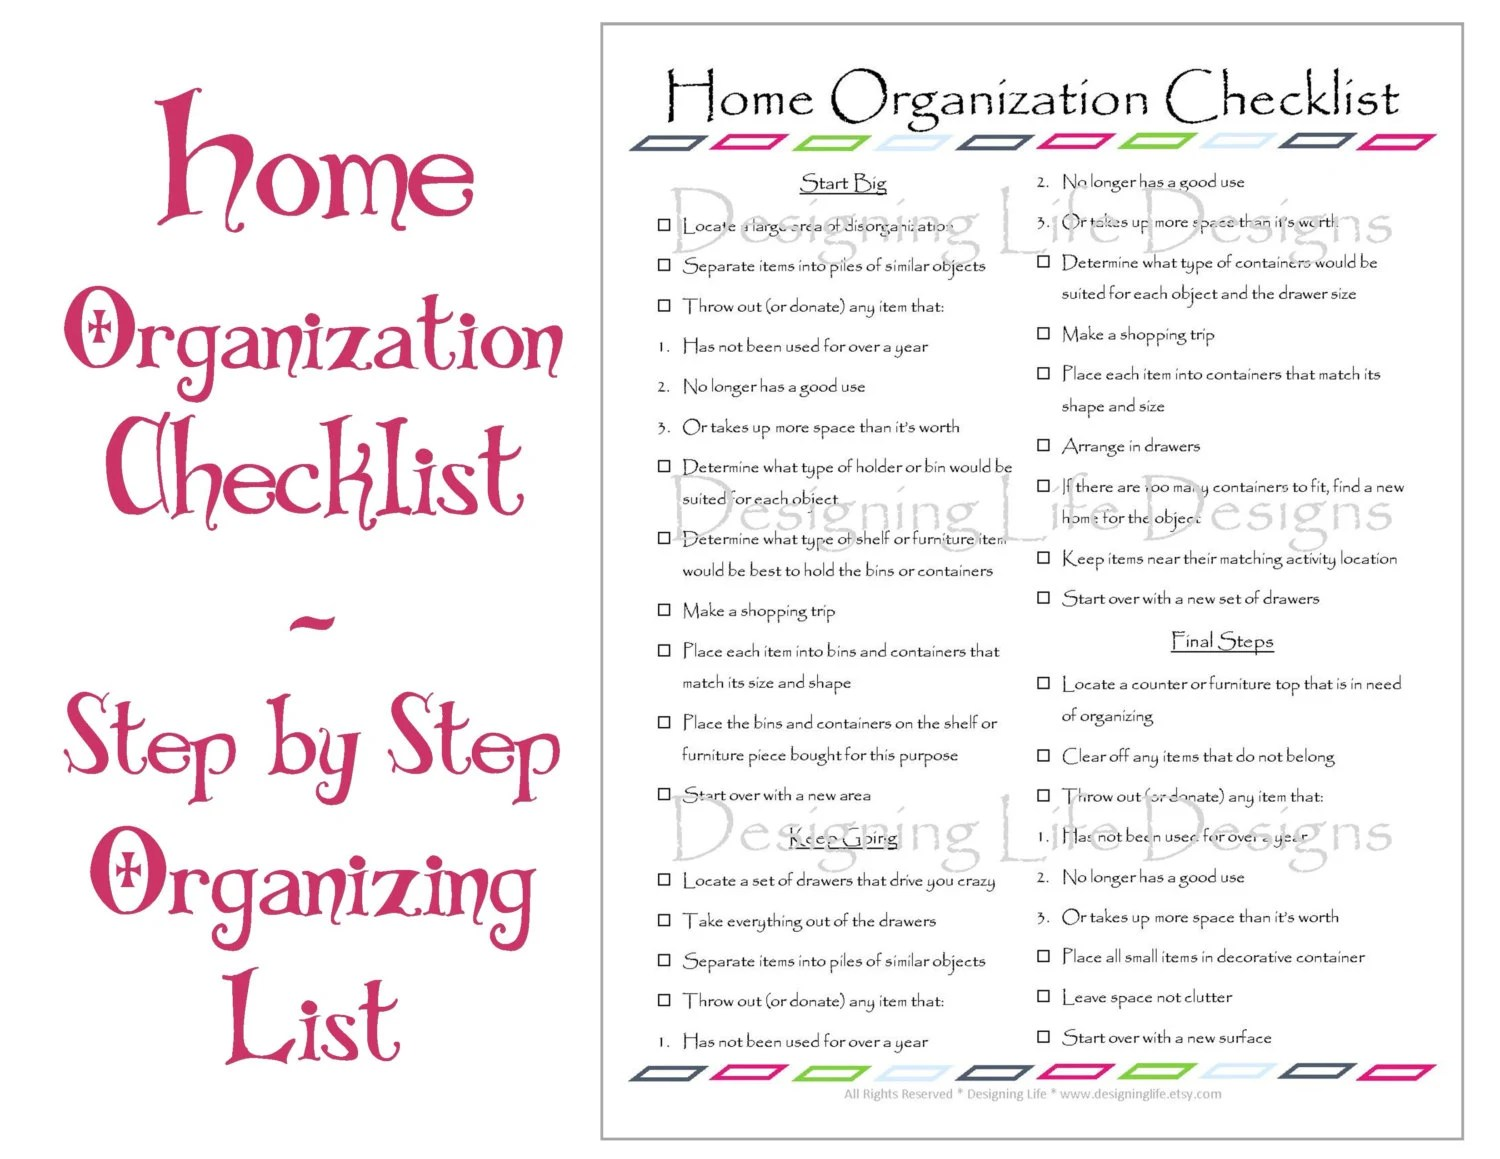 Home Organization Checklist Printable Basic By